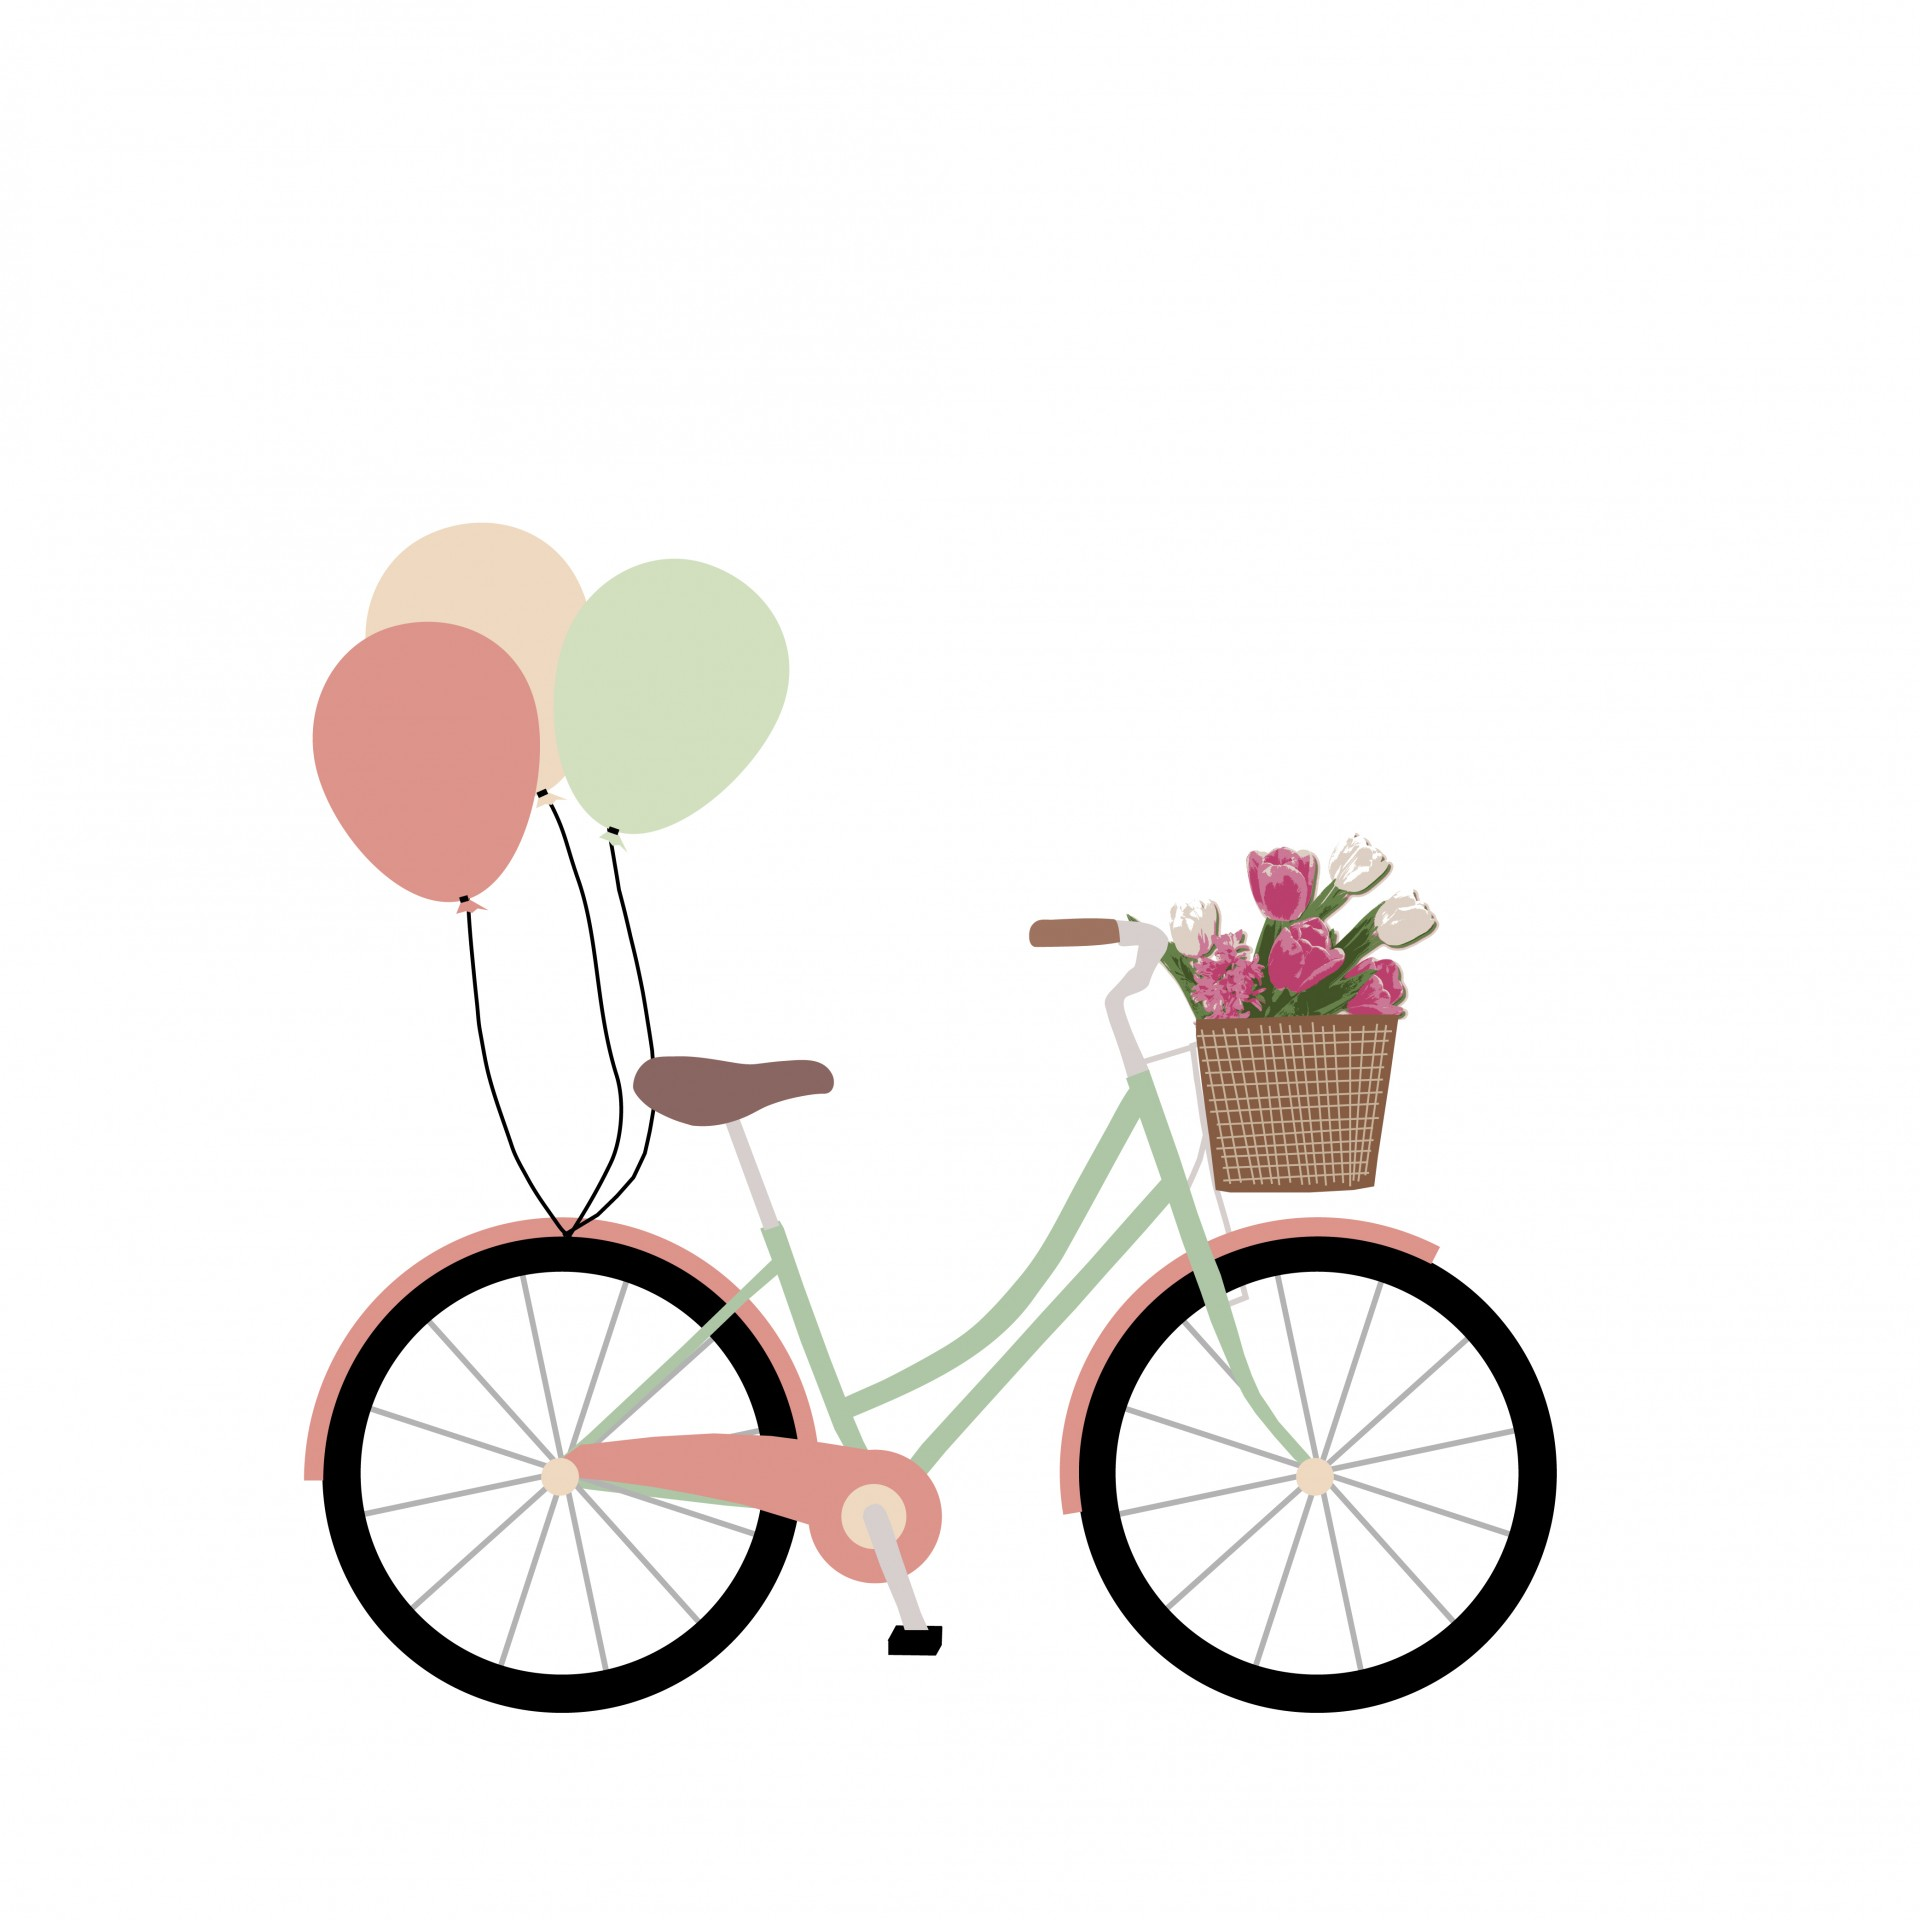 Bike bicycle with balloons. Biking clipart flower